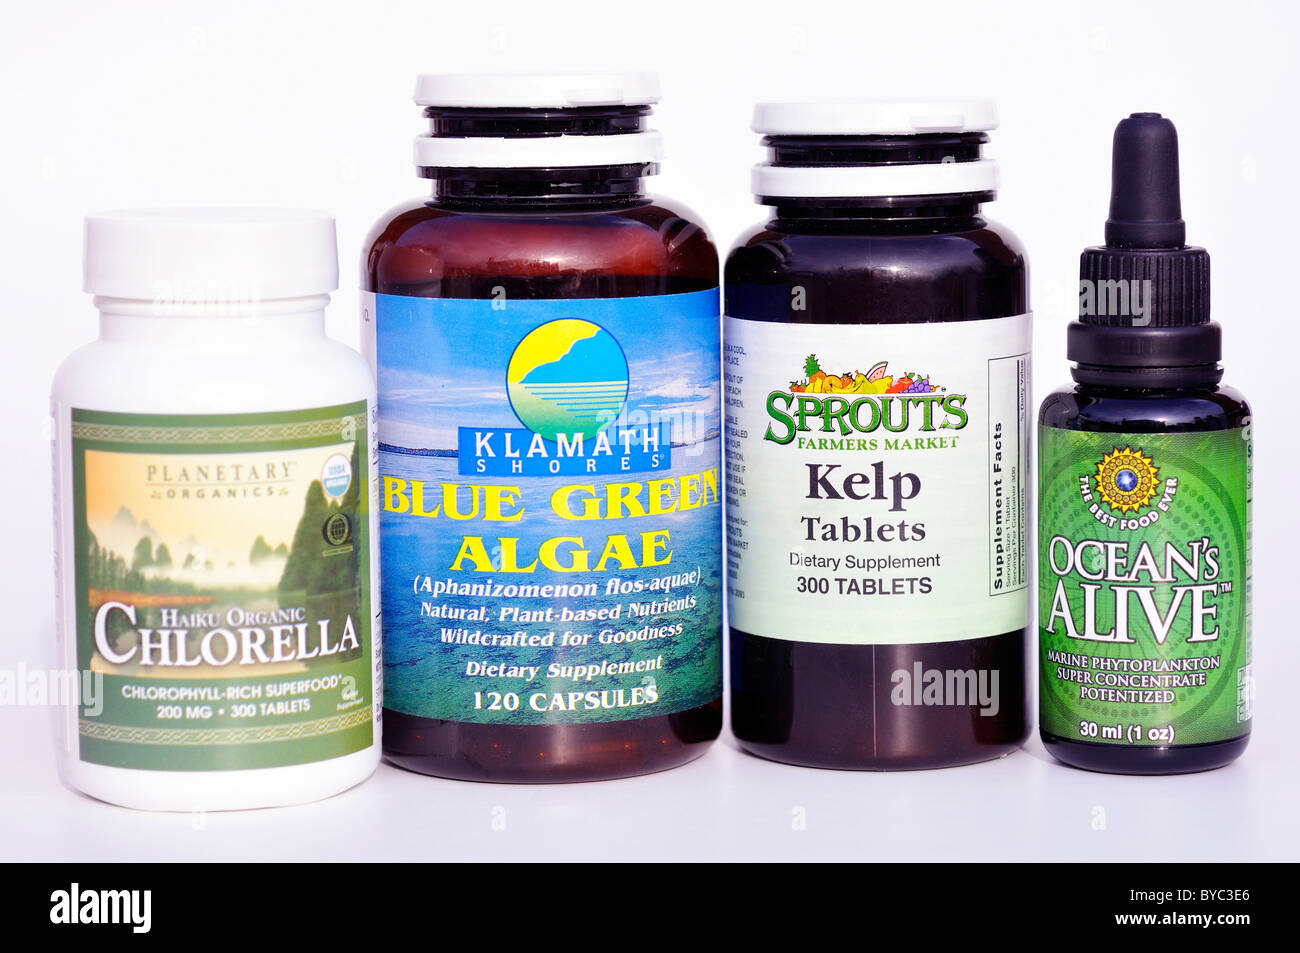 Image result for seaweed and blue green algae supplements